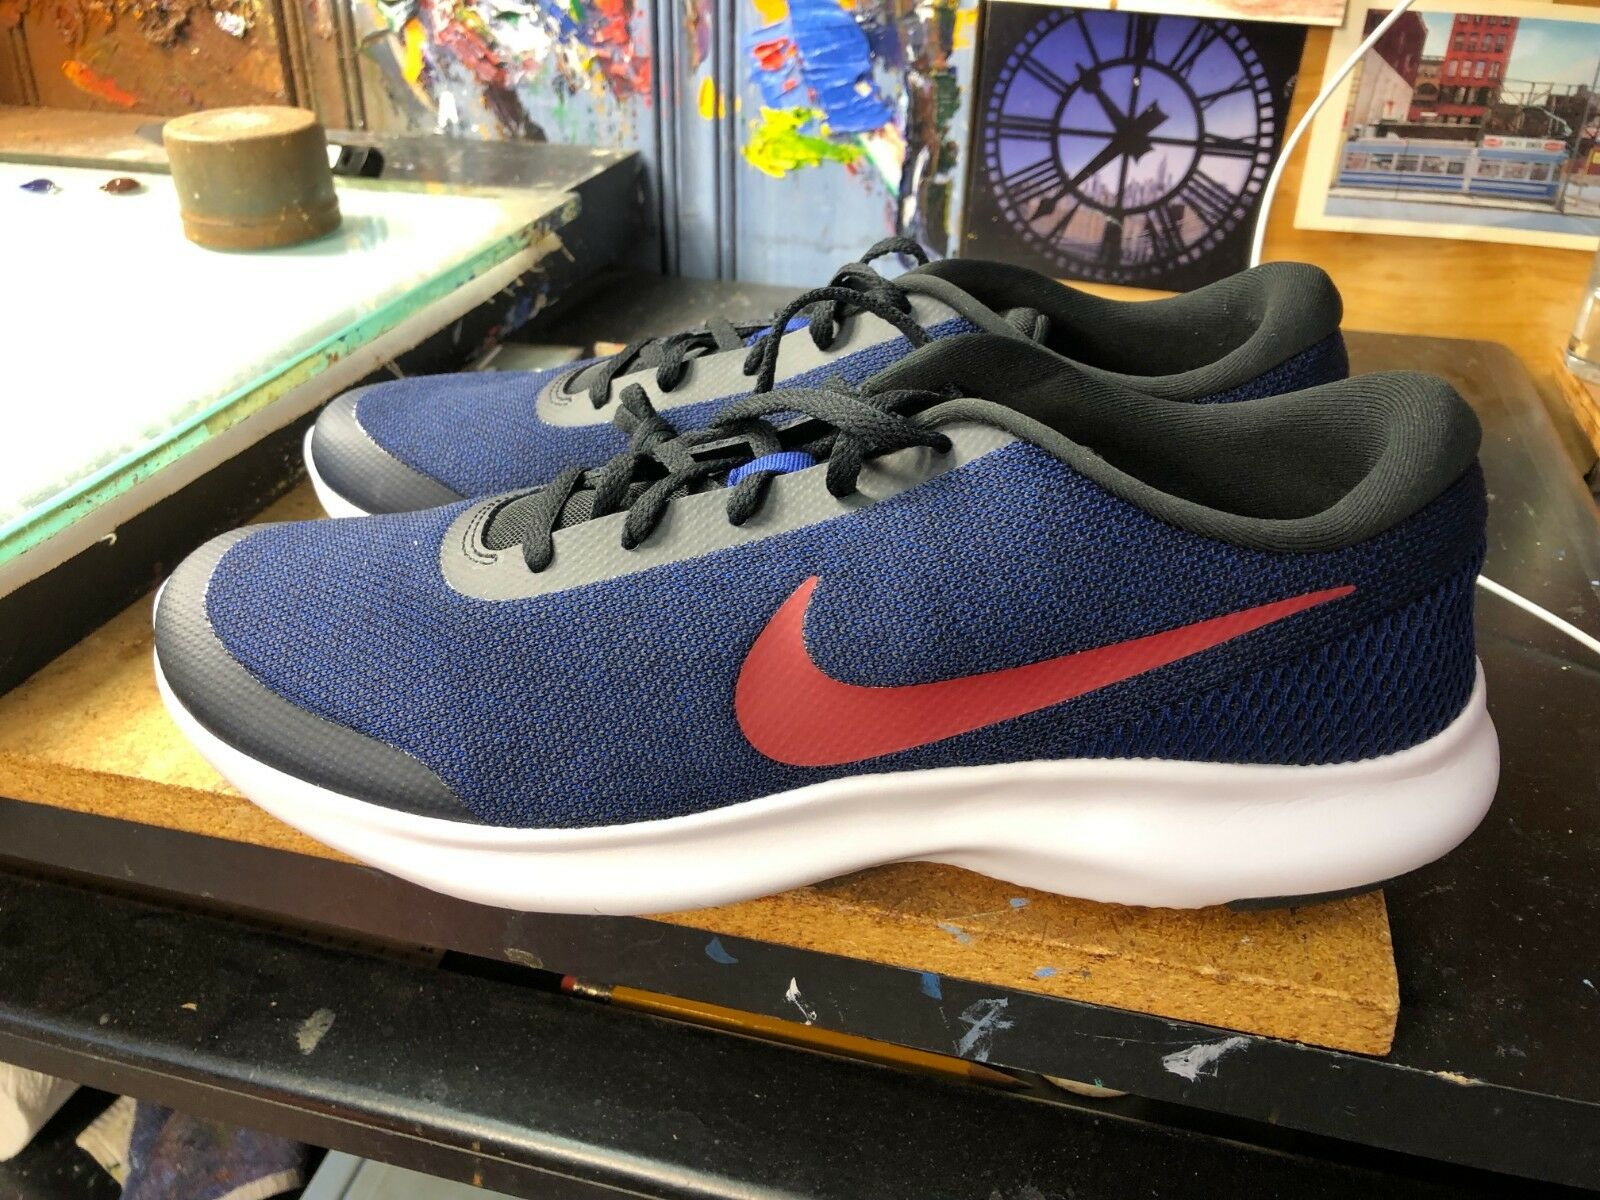 Nike Flex Experience RN 7 Black Red Crush bluee bluee bluee Running Size US 13 Men 908985 013 cf9a08